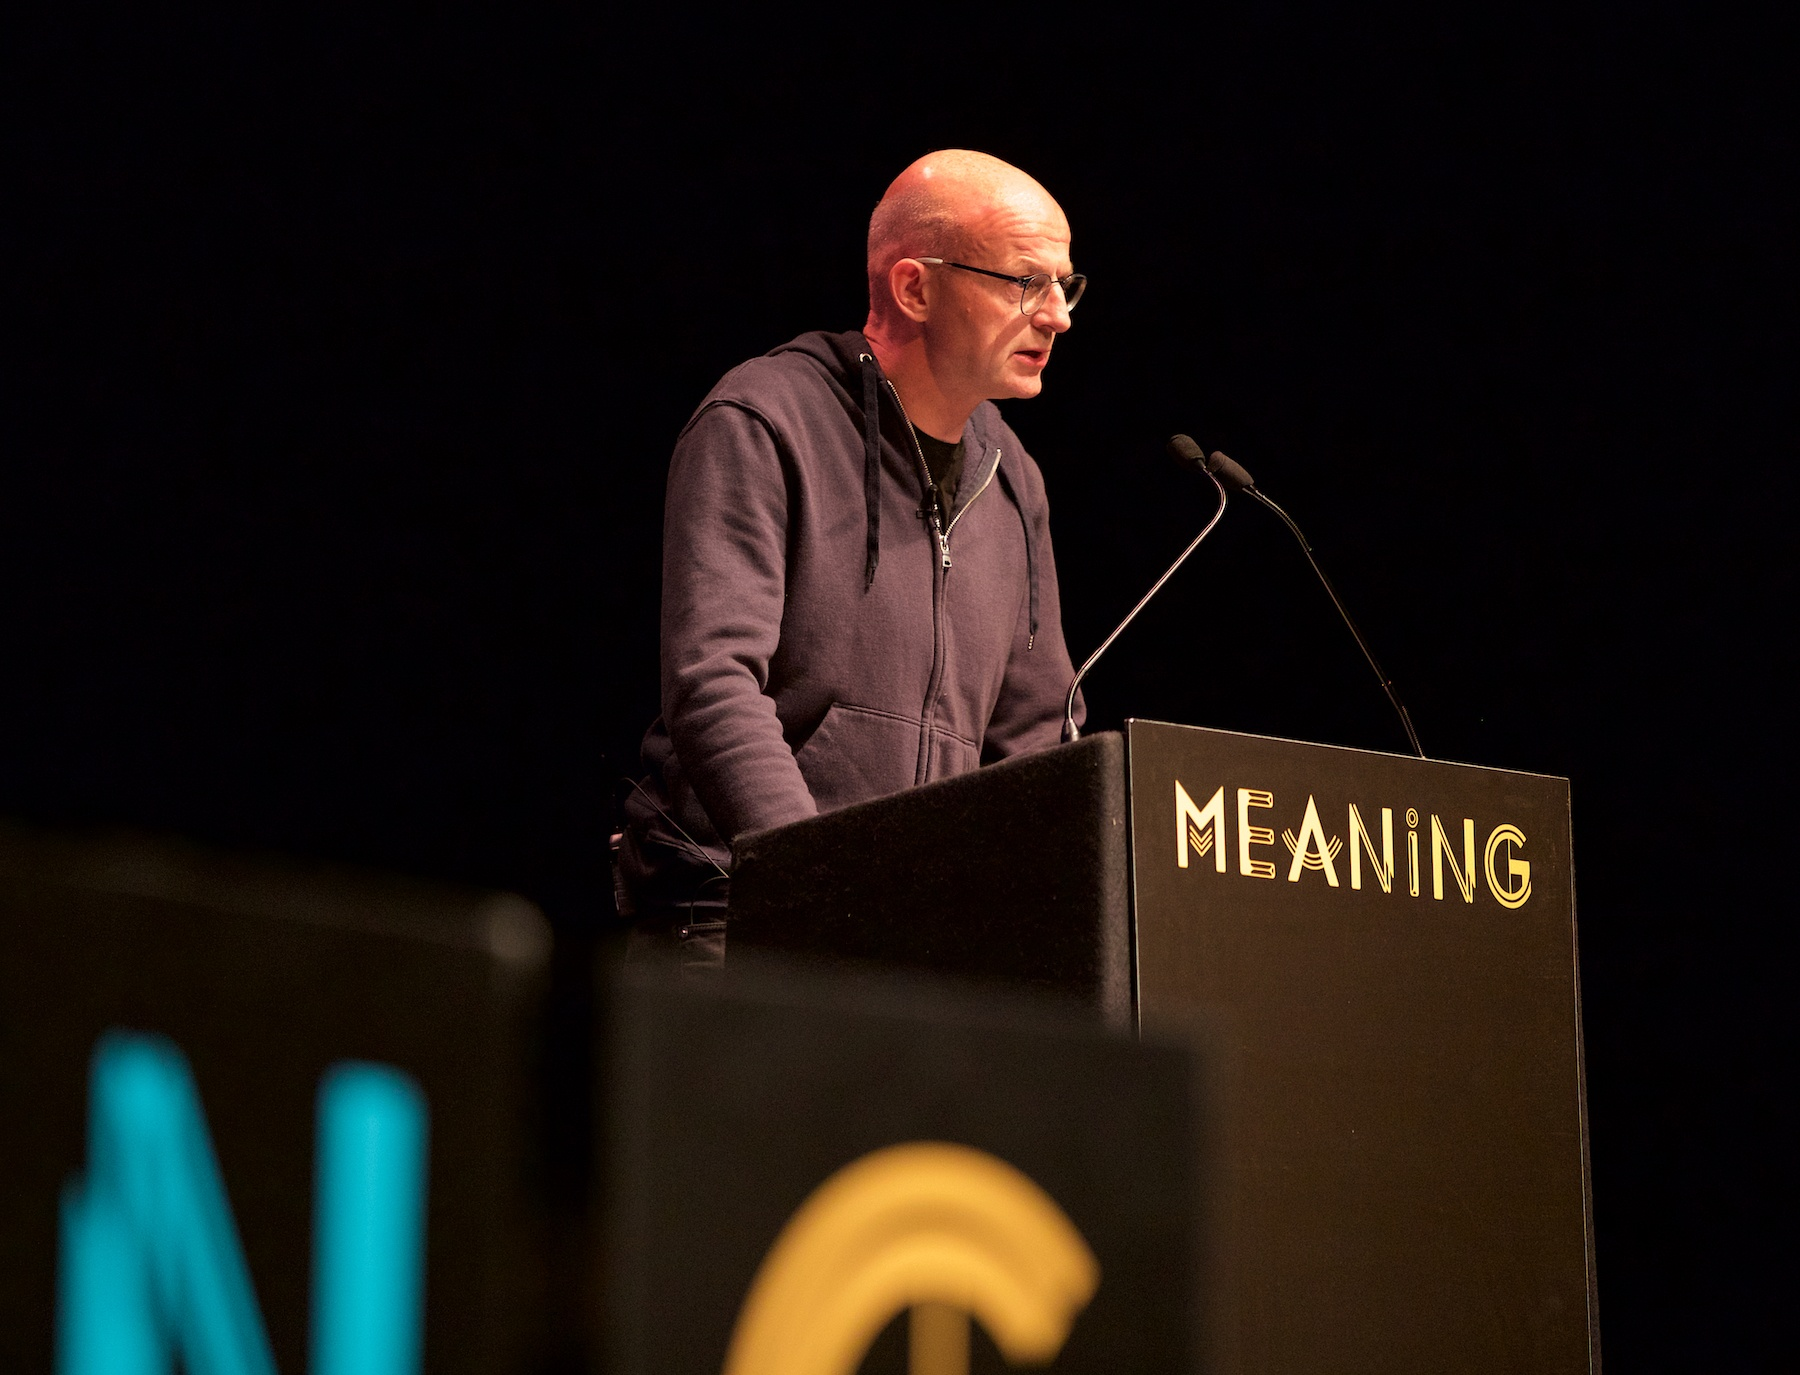 Dan McQuillan at Meaning 2018